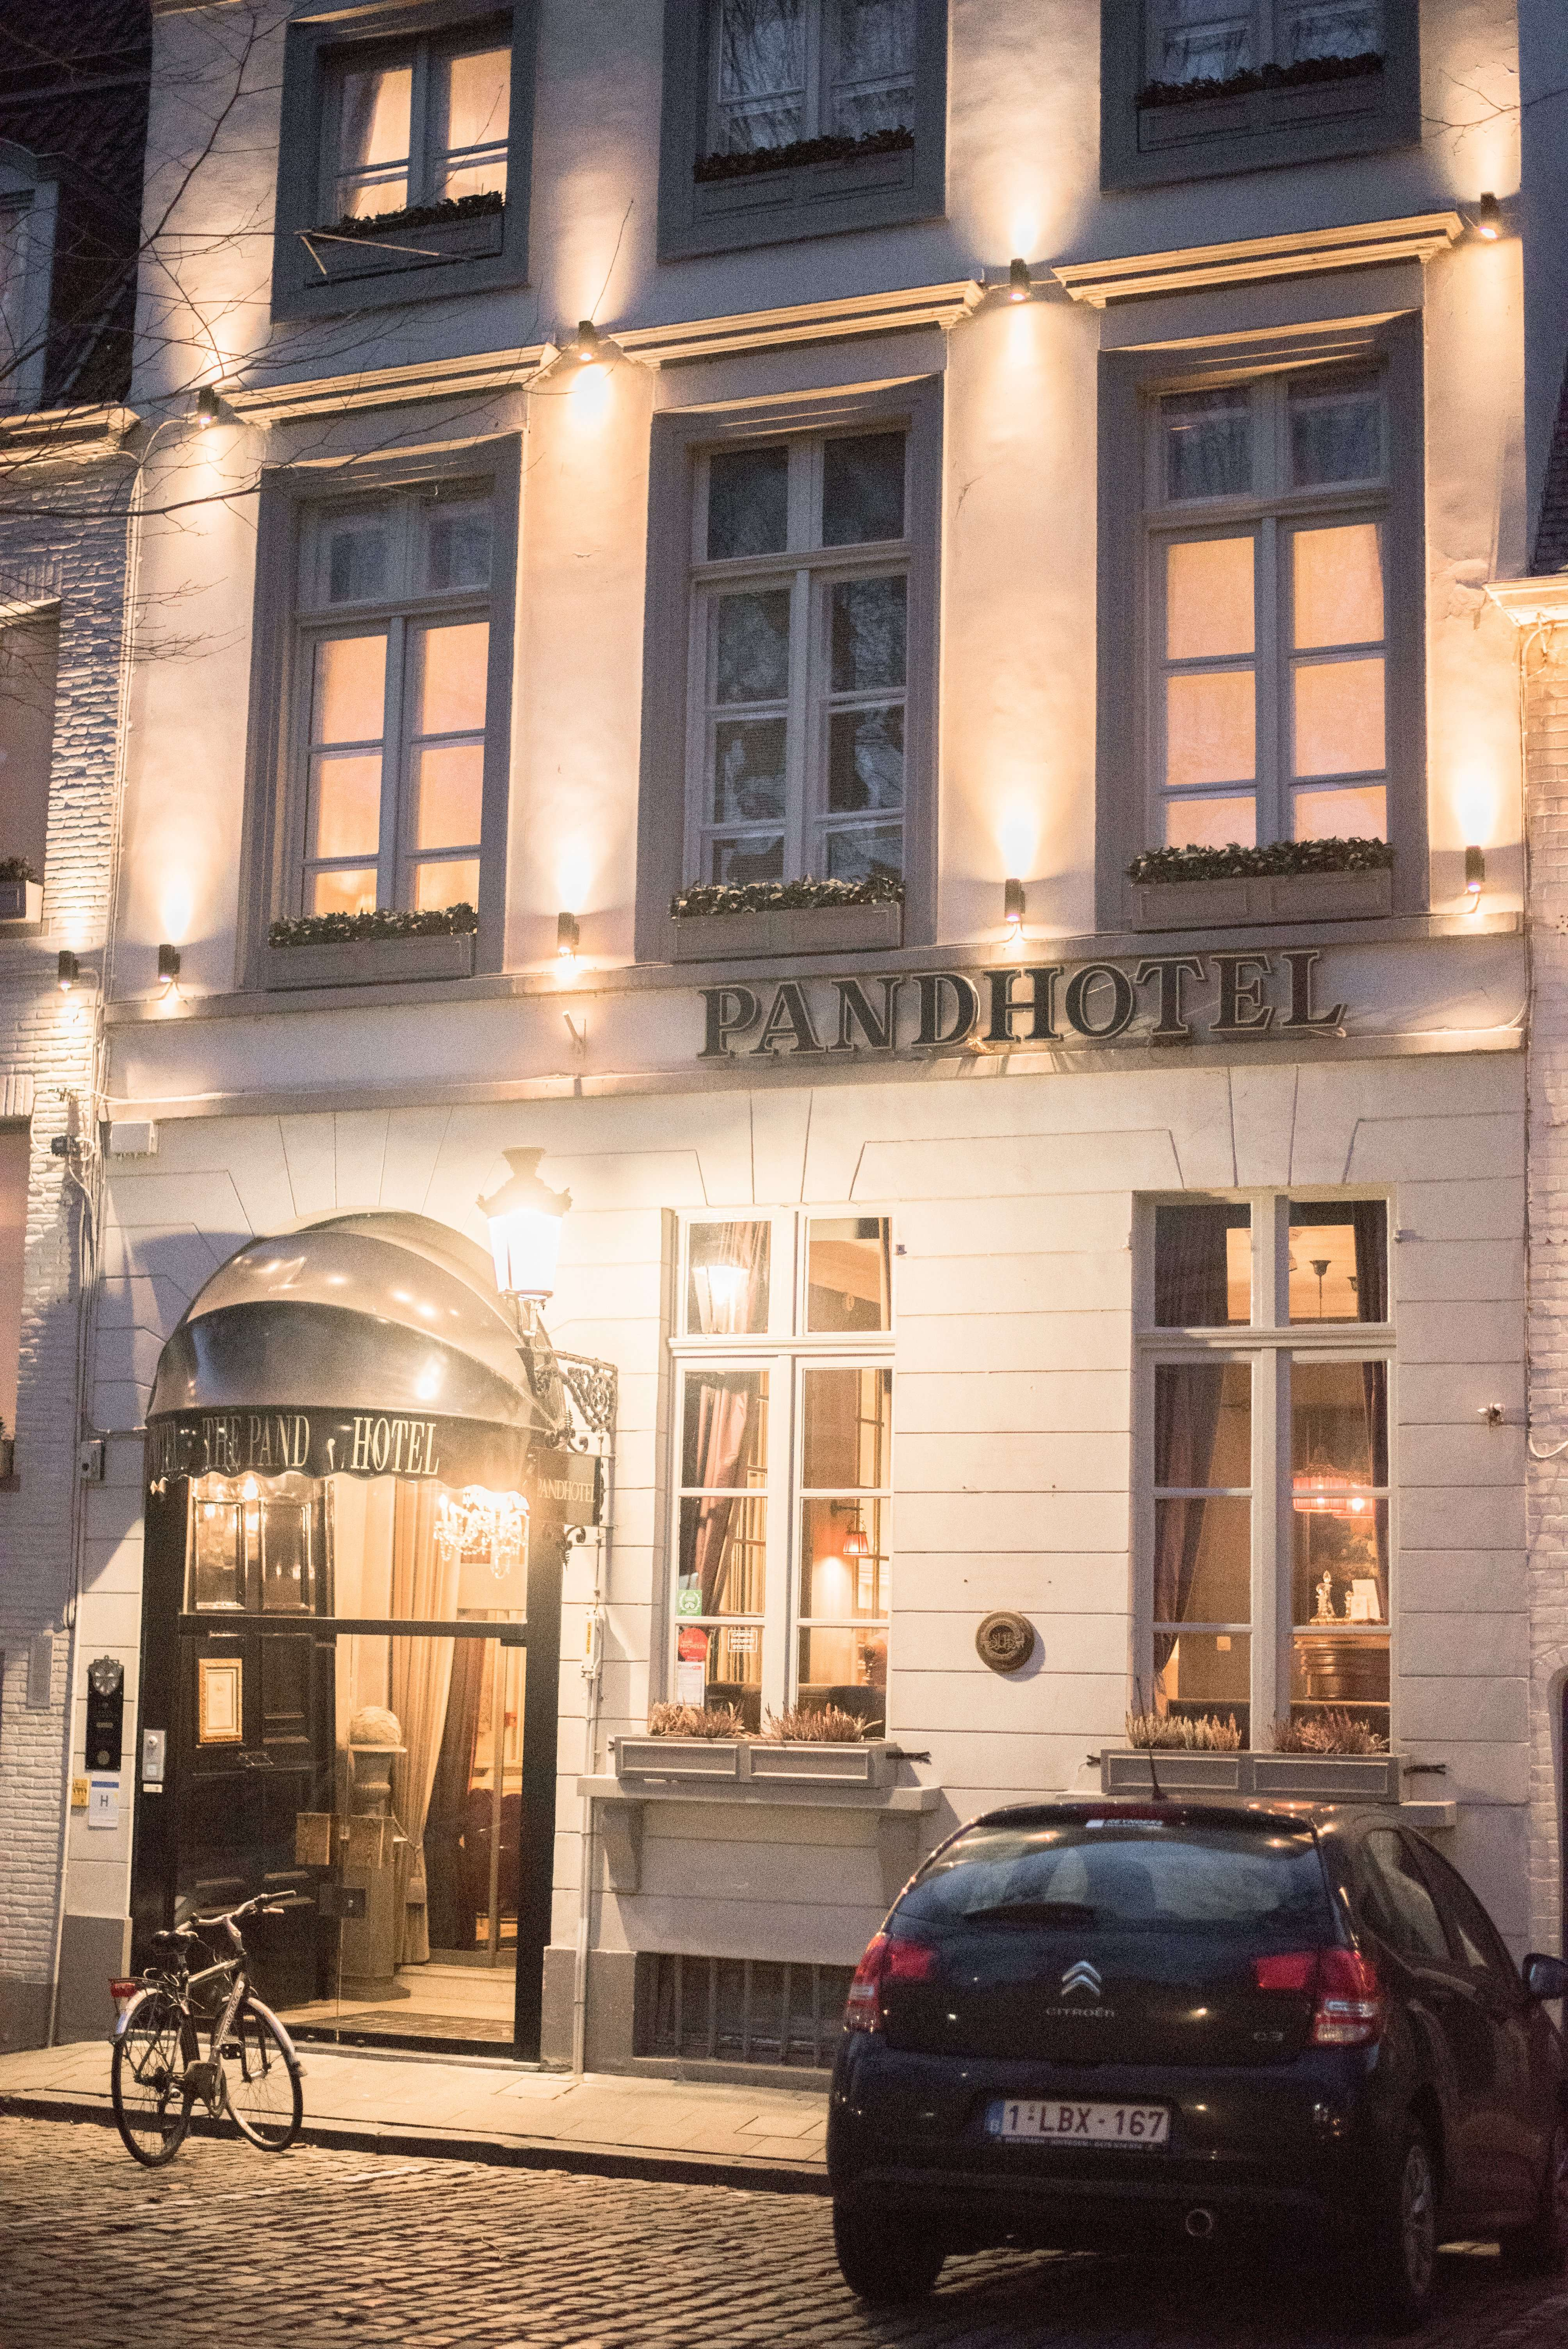 The Pand Hotel, Bruges